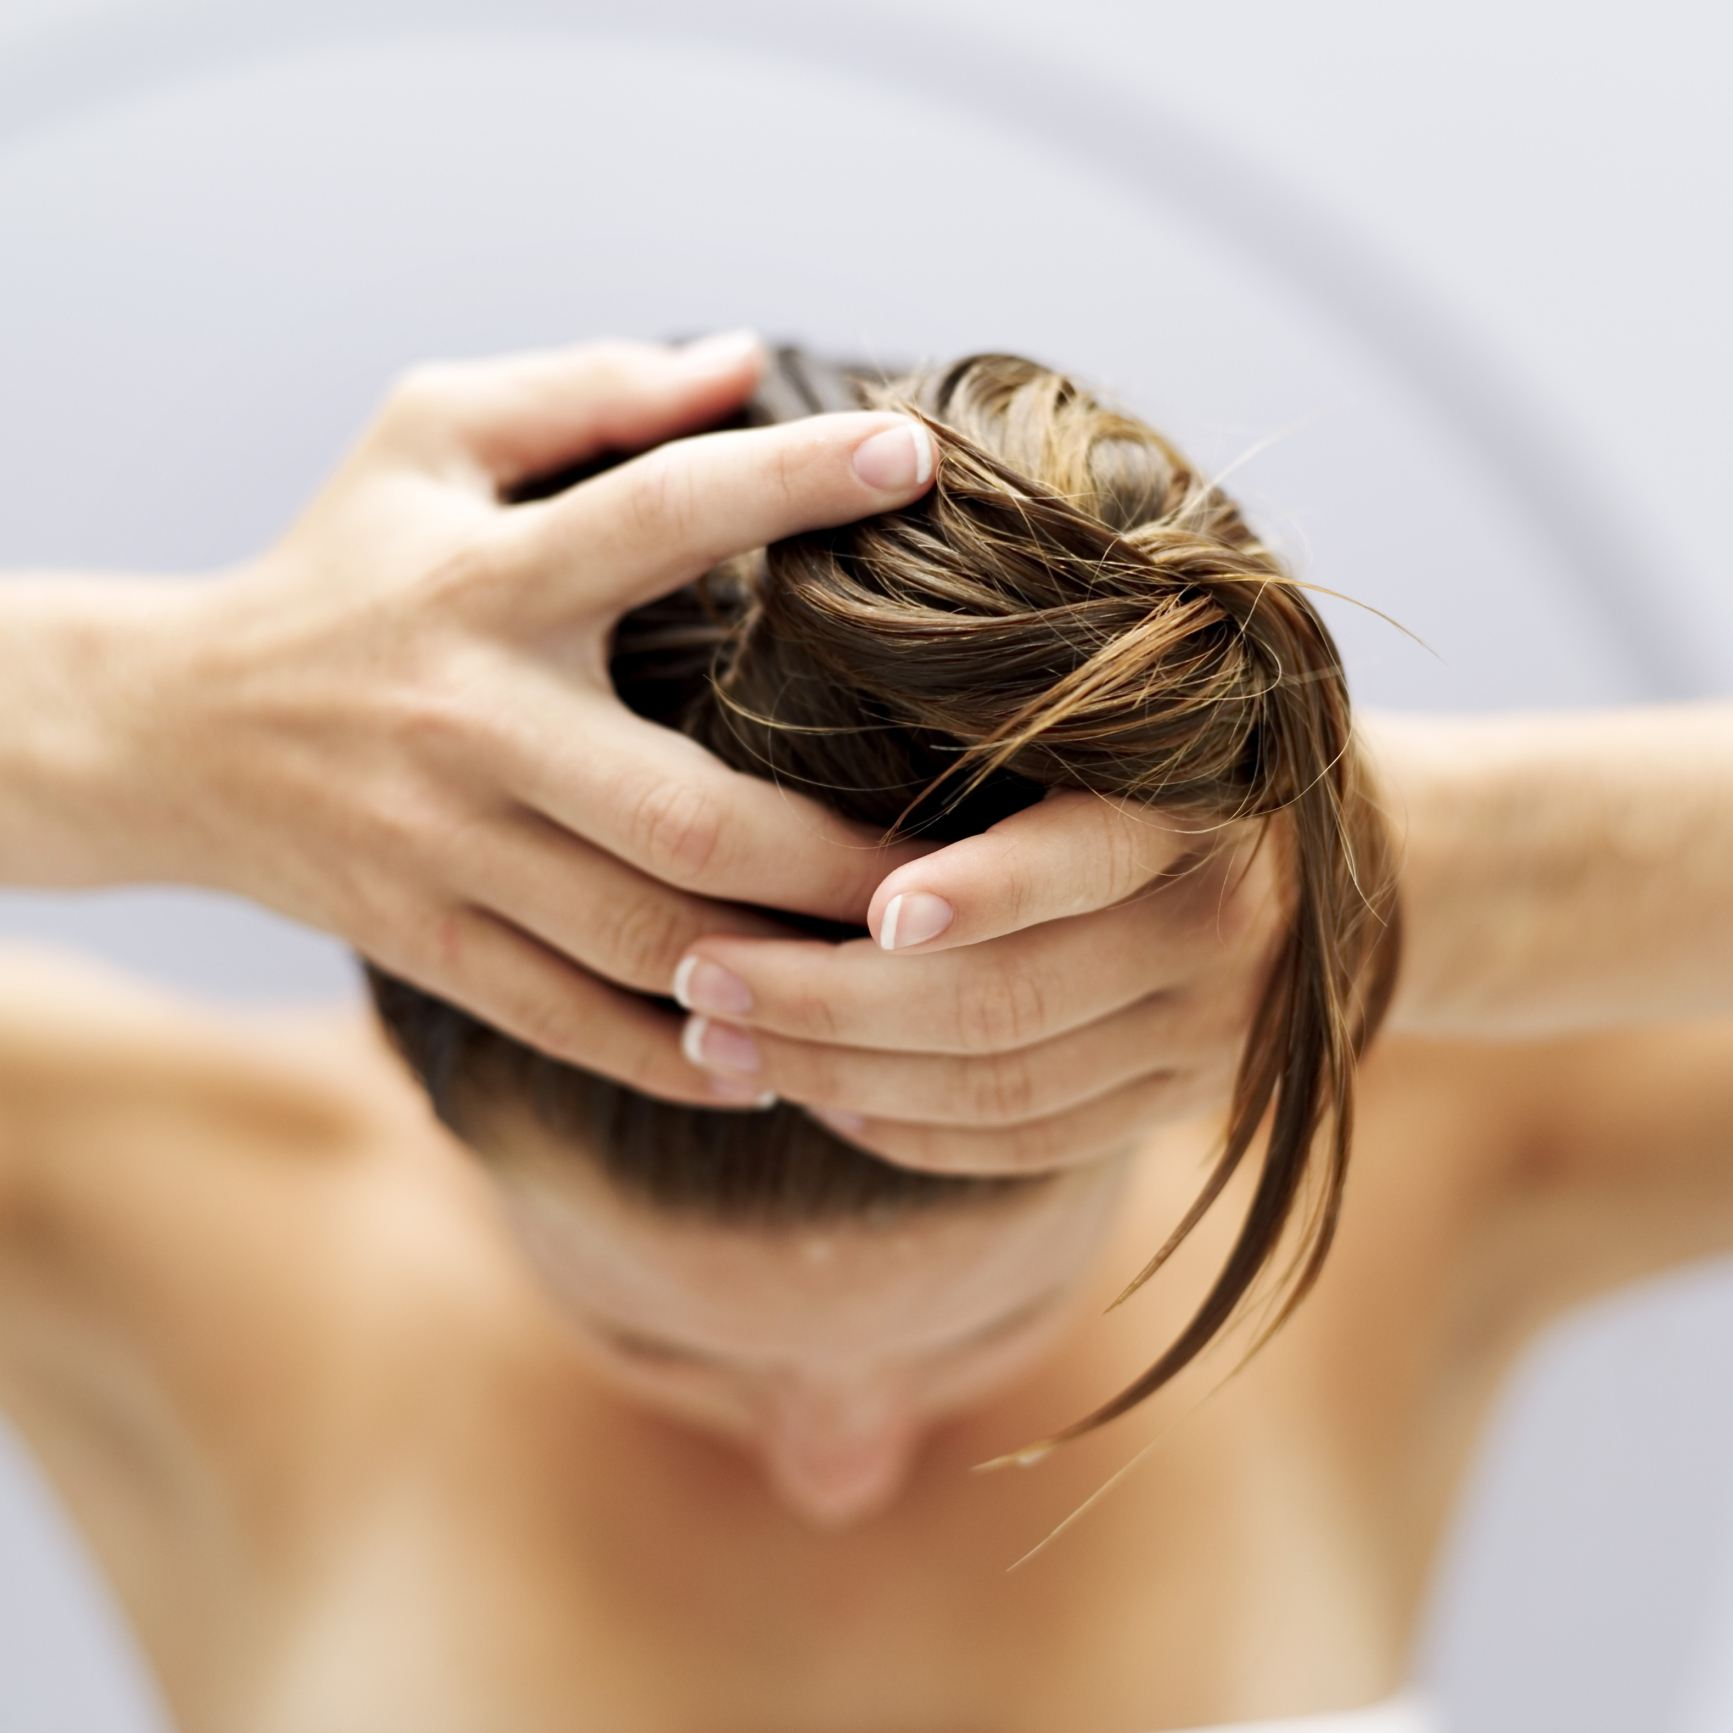 High angle view of a woman piling her hair up into a bun